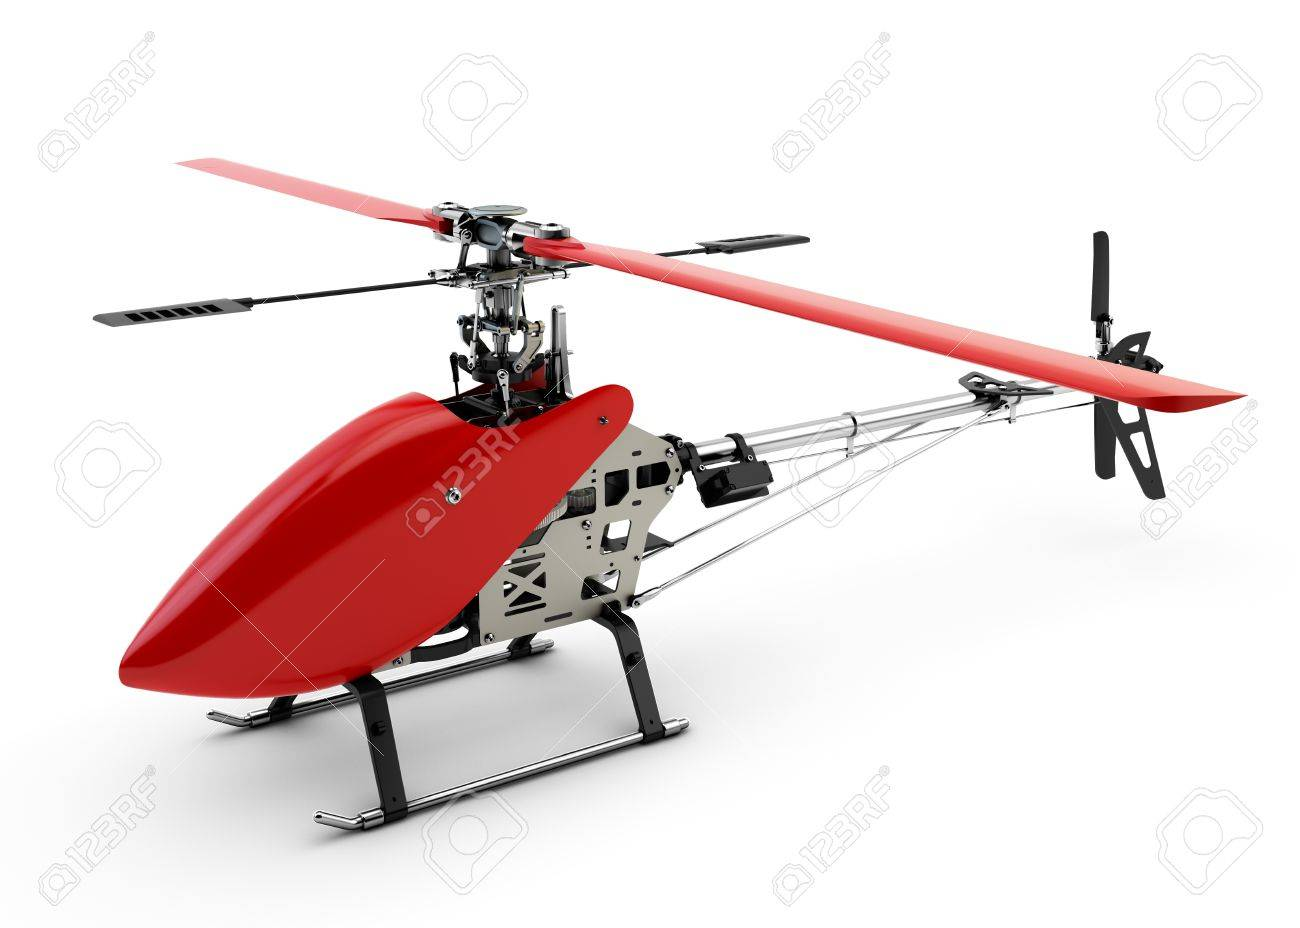 Generic red remote controlled helicopter isolated on white background Stock Photo - 21121895